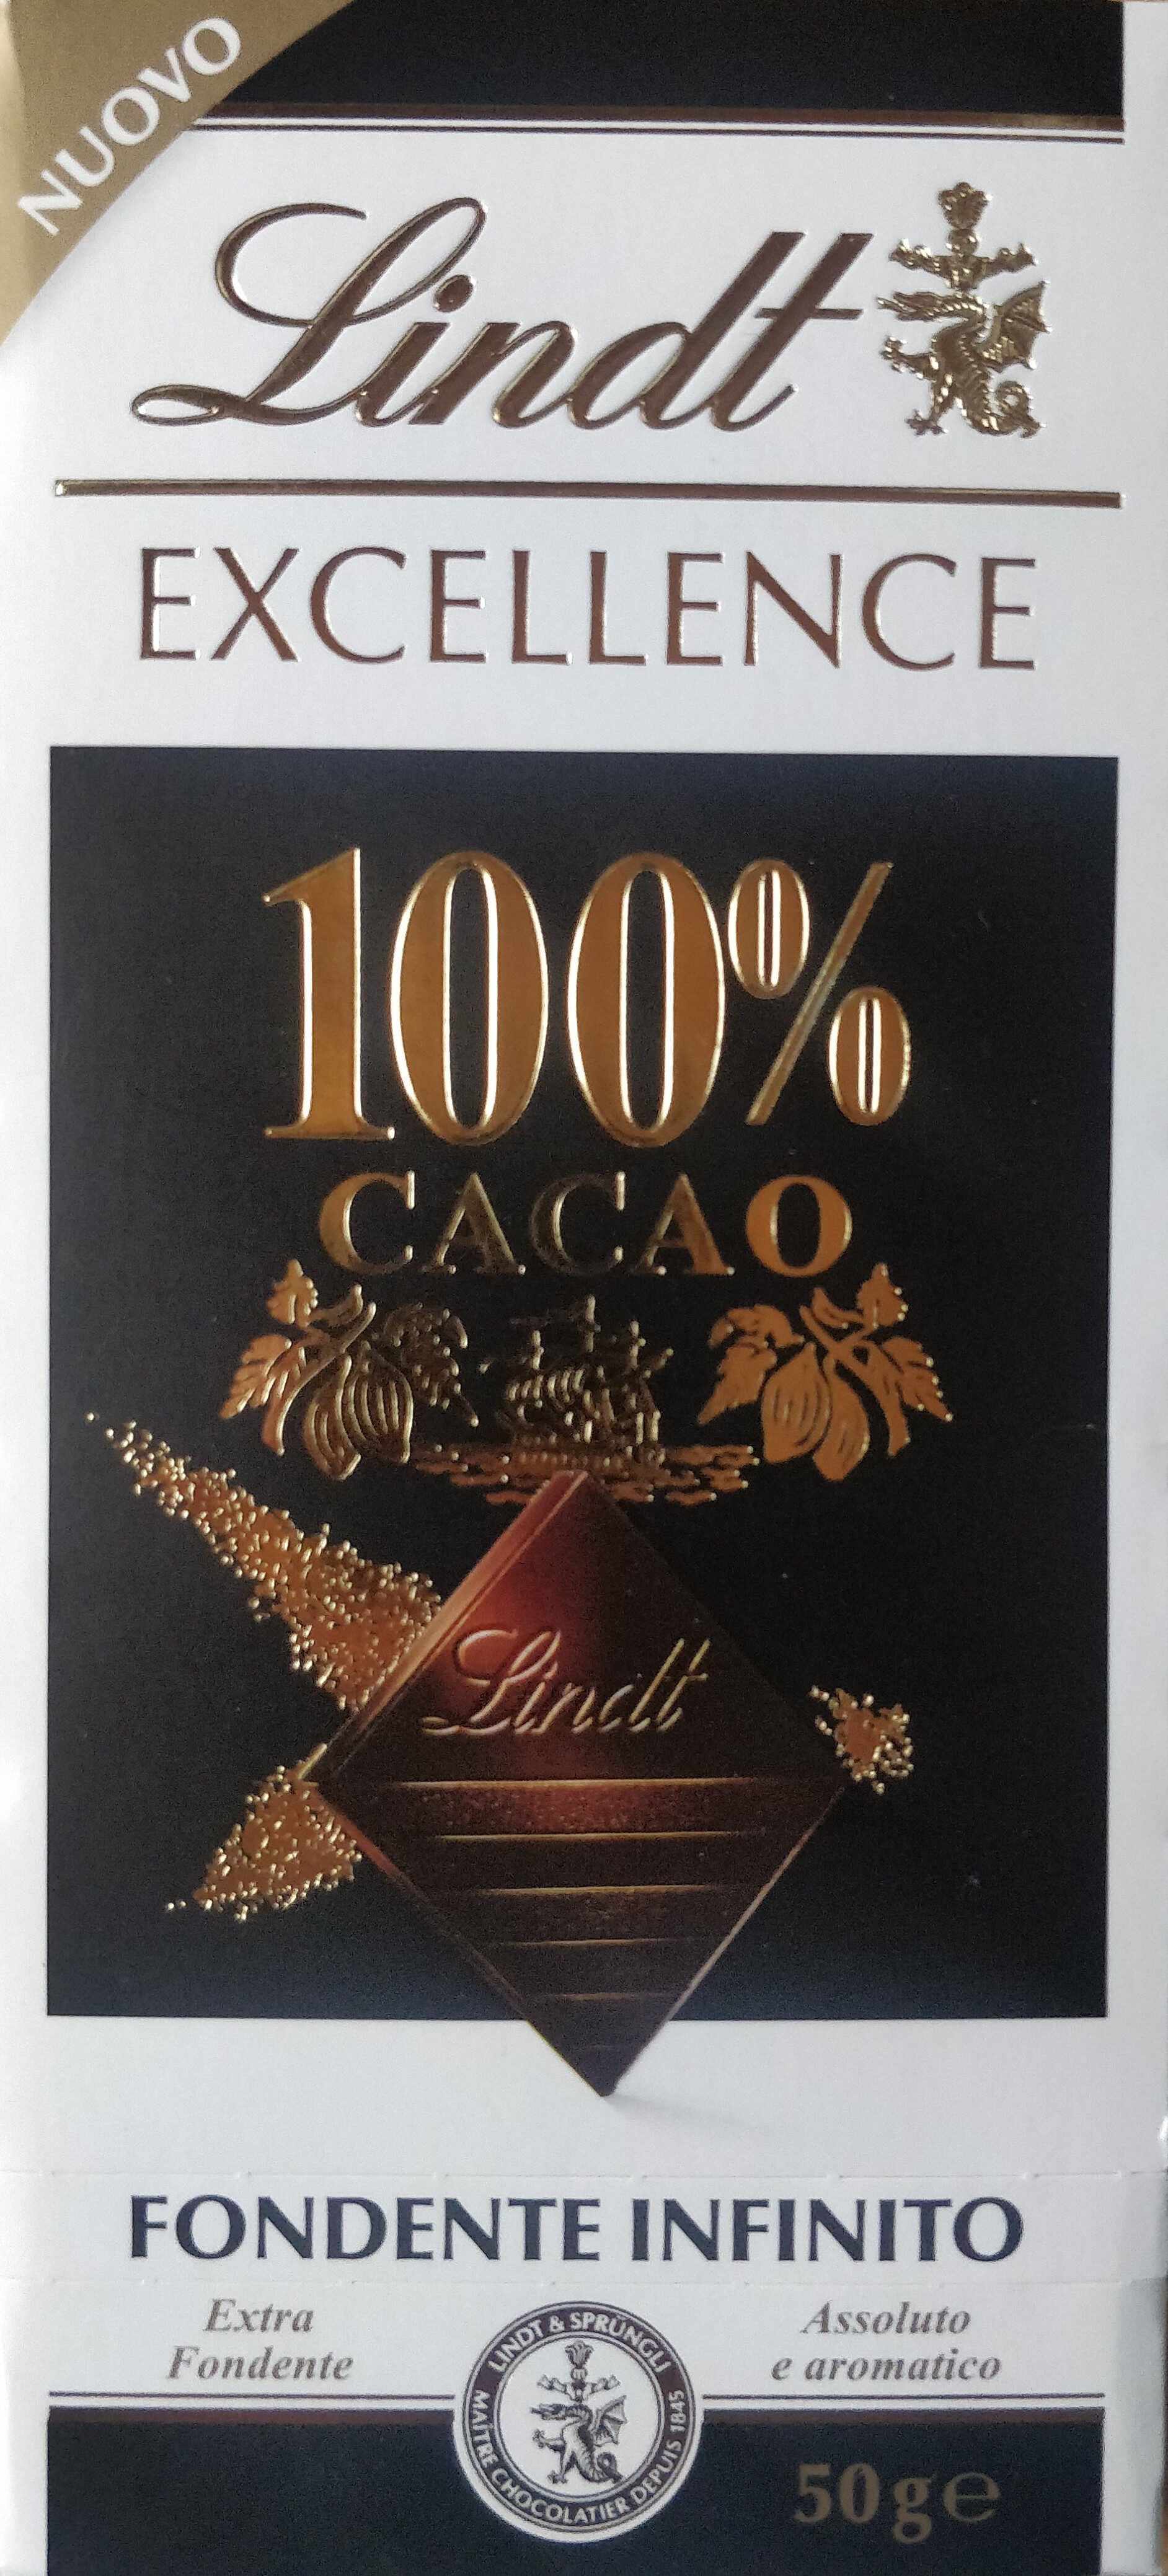 Excellence - 100% cacao noir infini - Prodotto - it